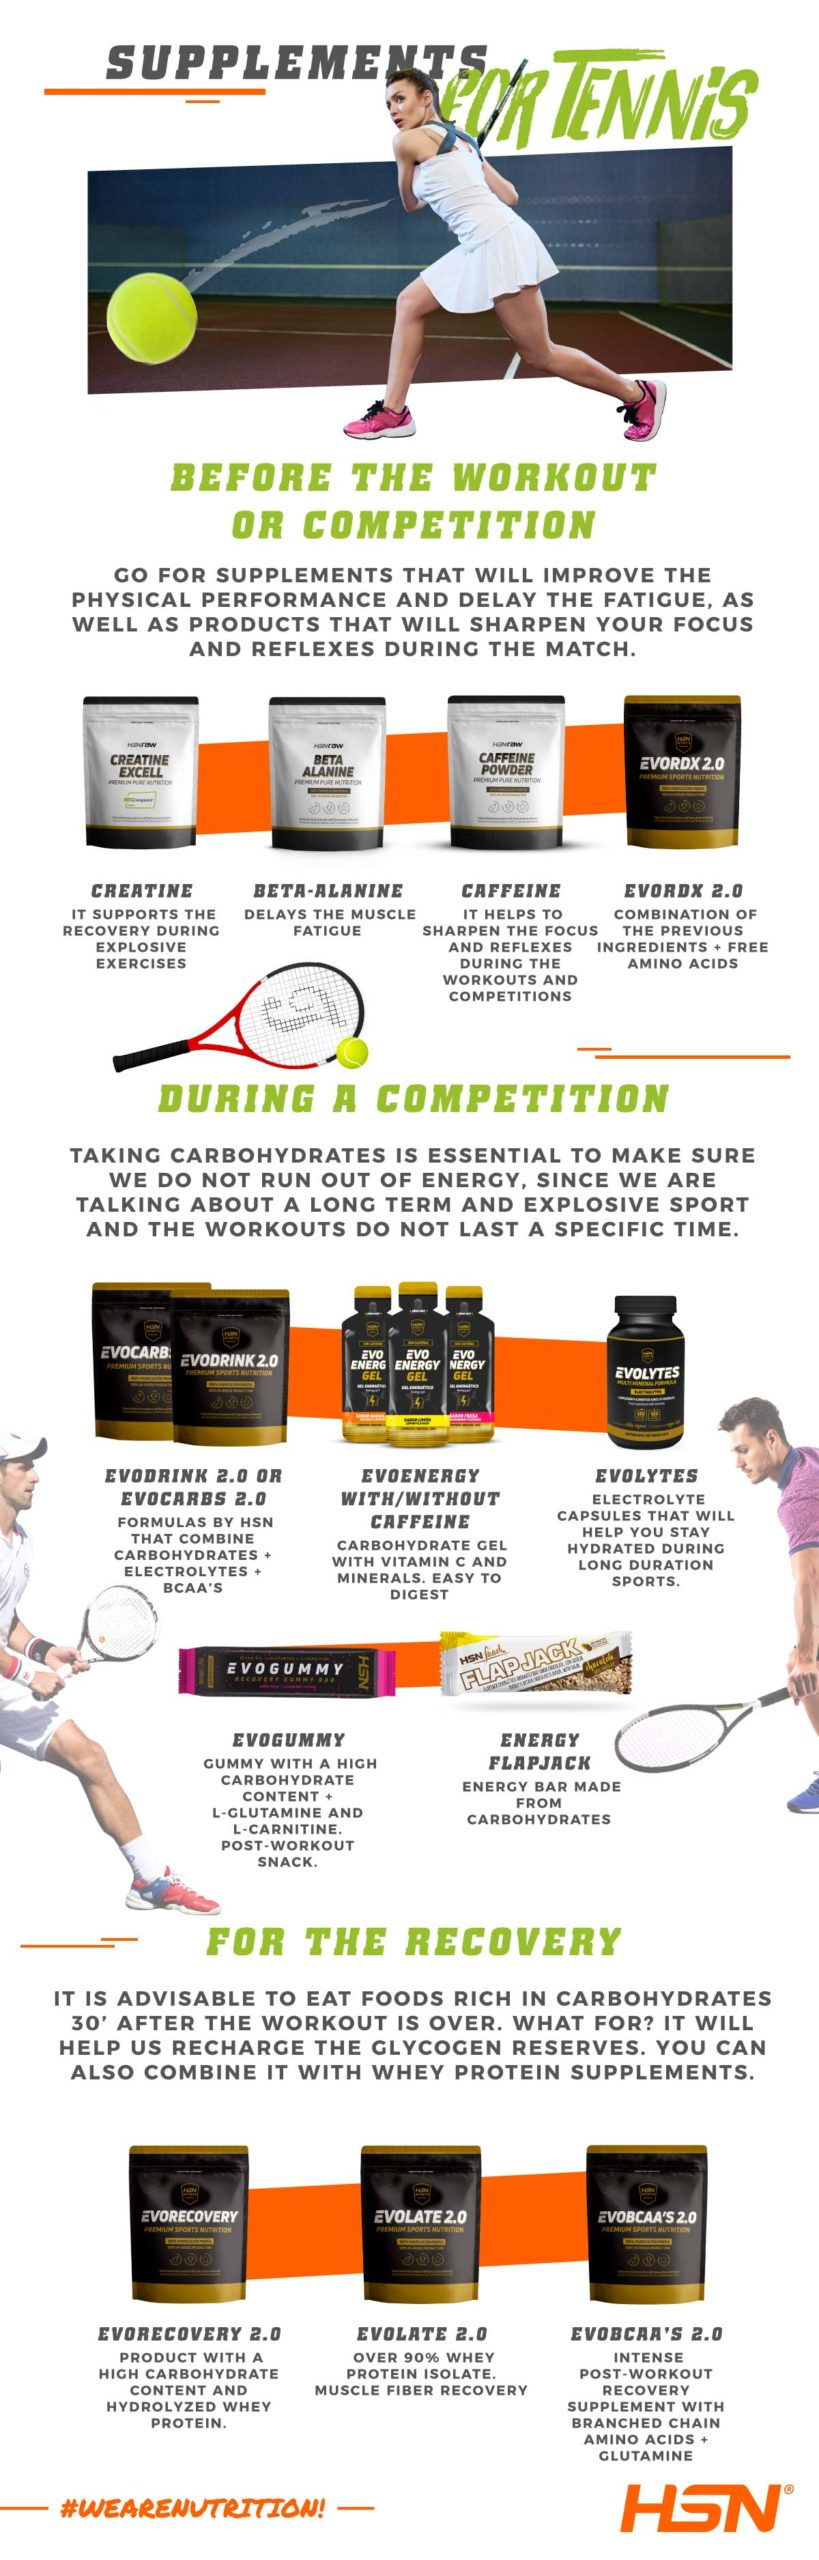 Info about supplements for tennis